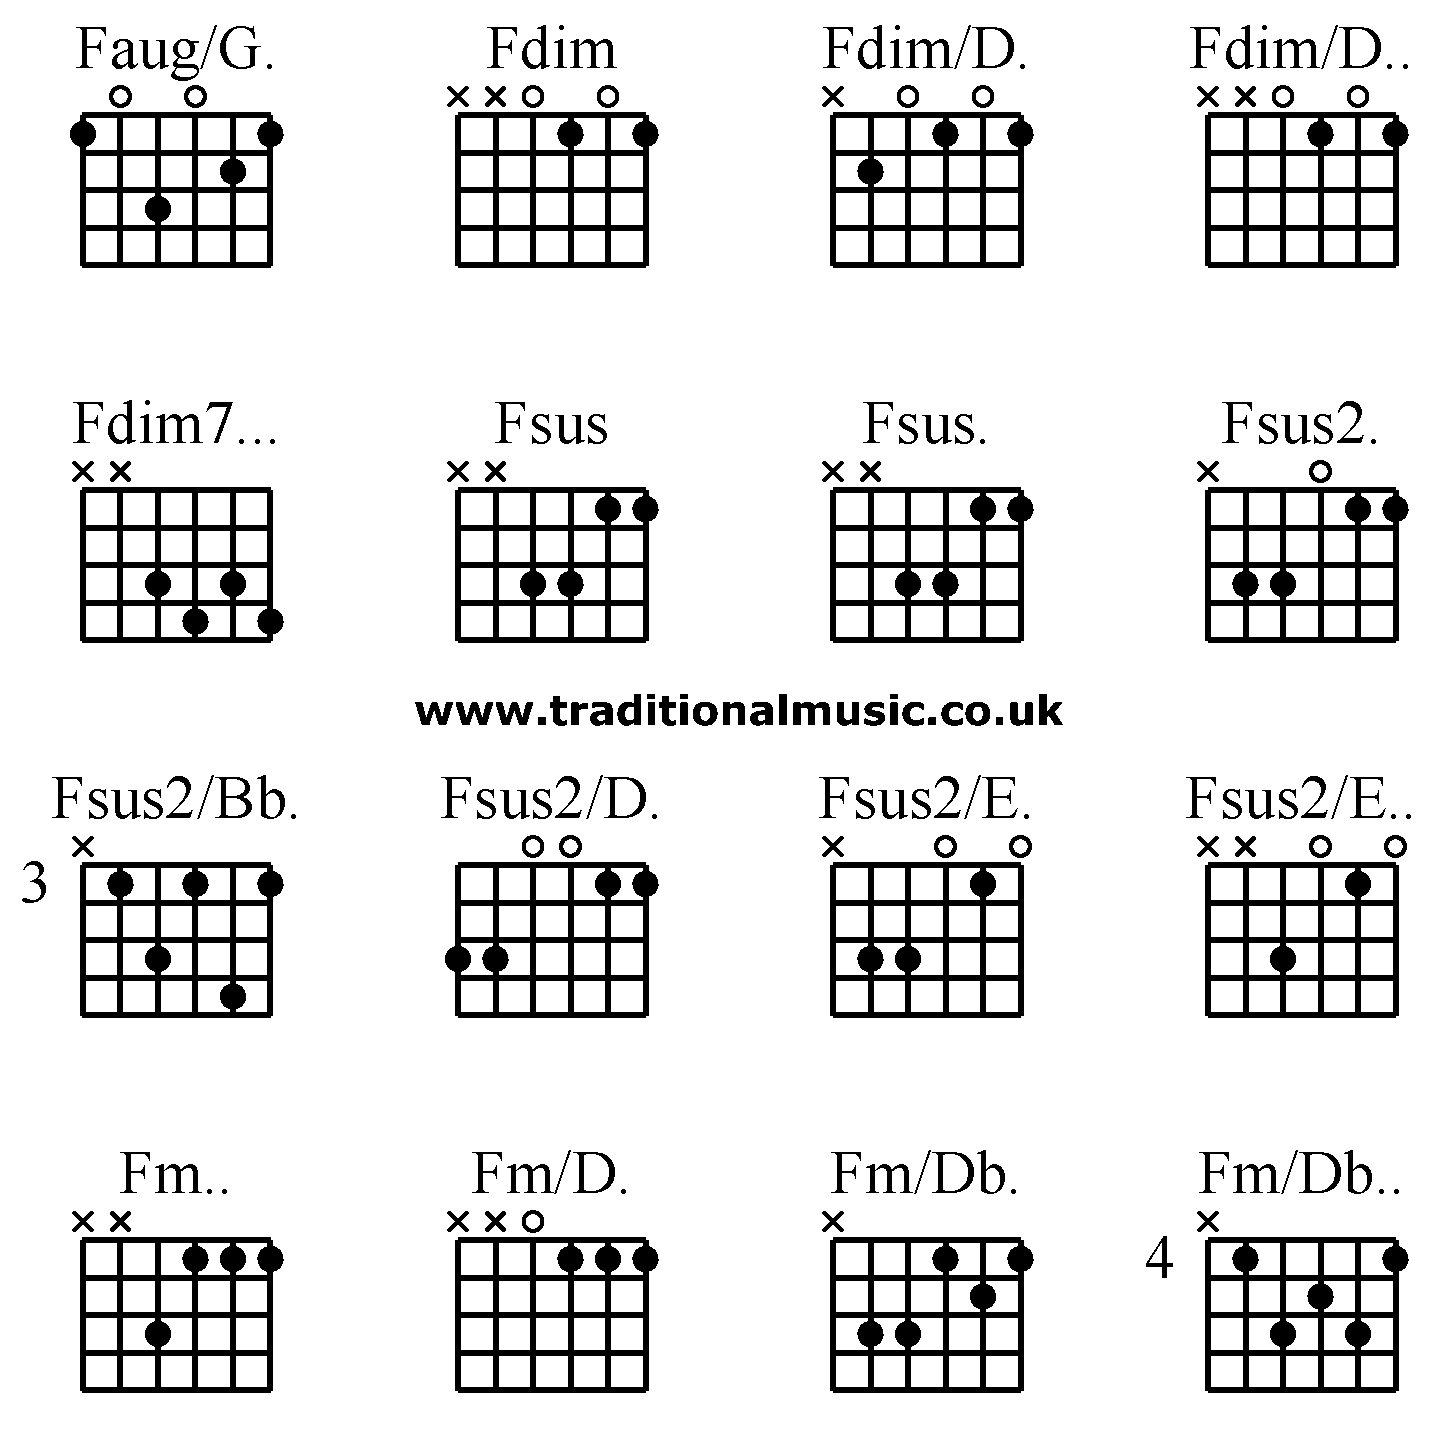 Enchanting F M Guitar Chord Variations Image Collection Beginner